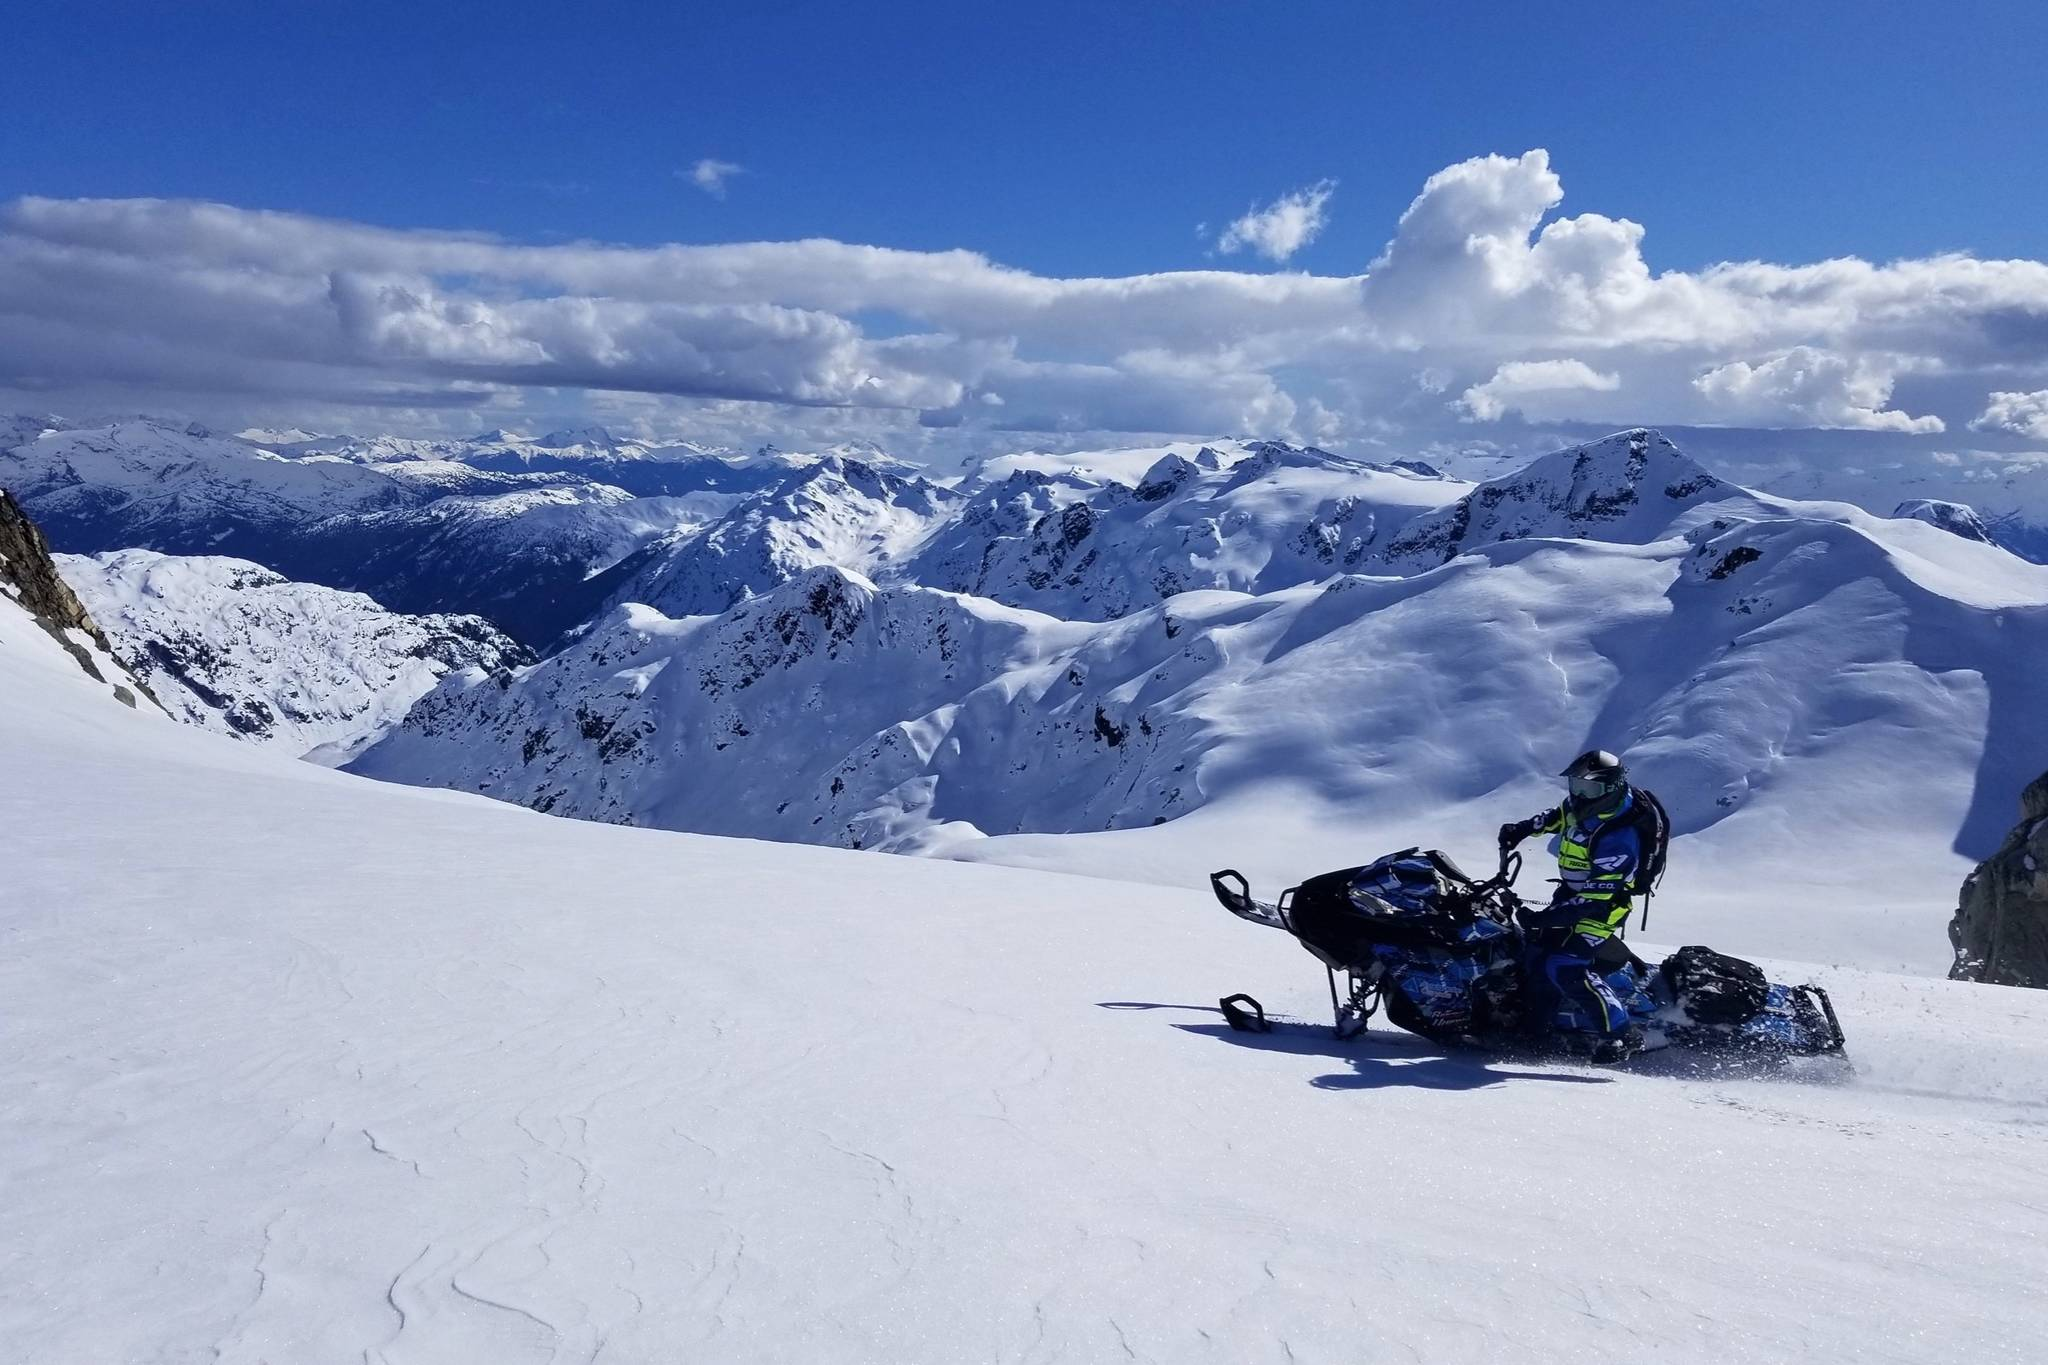 COLUMN: March is a great time to be on the slopes, but it's also the deadliest